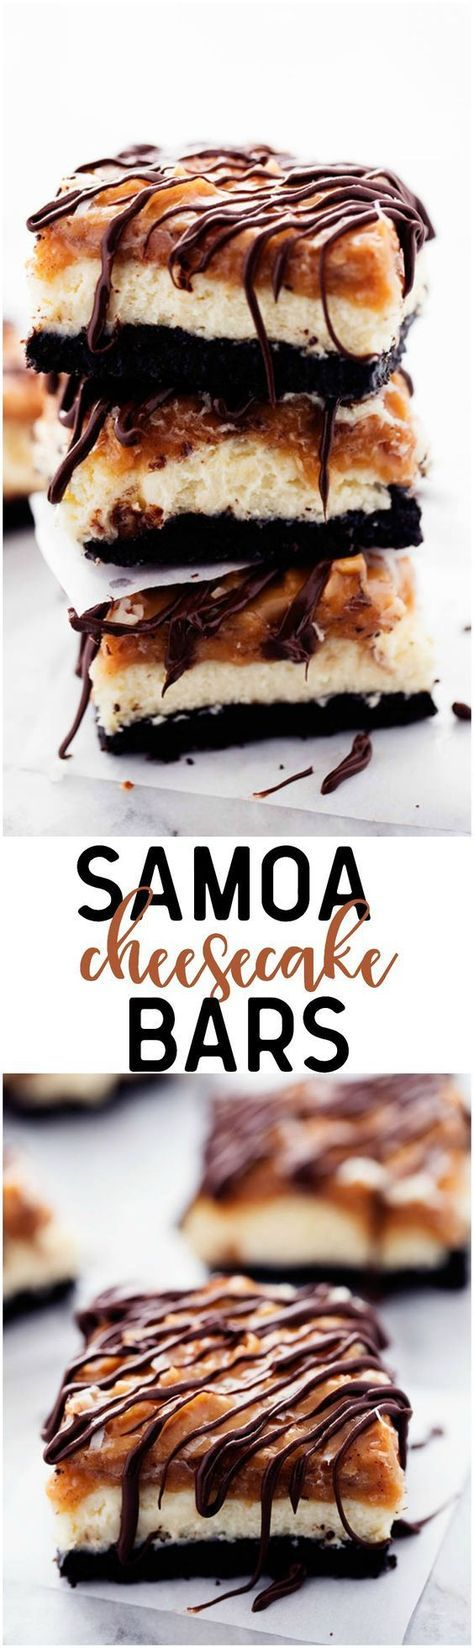 Samoa Cheesecake Bars Dessert Recipe via The Recipe Critic - A chocolate oreo crust with creamy cheesecake in the center and topped with coconut caramel and drizzled in chocolate. All of the things that you love in a Samoa Cookie in a delicious cheesecake dessert!